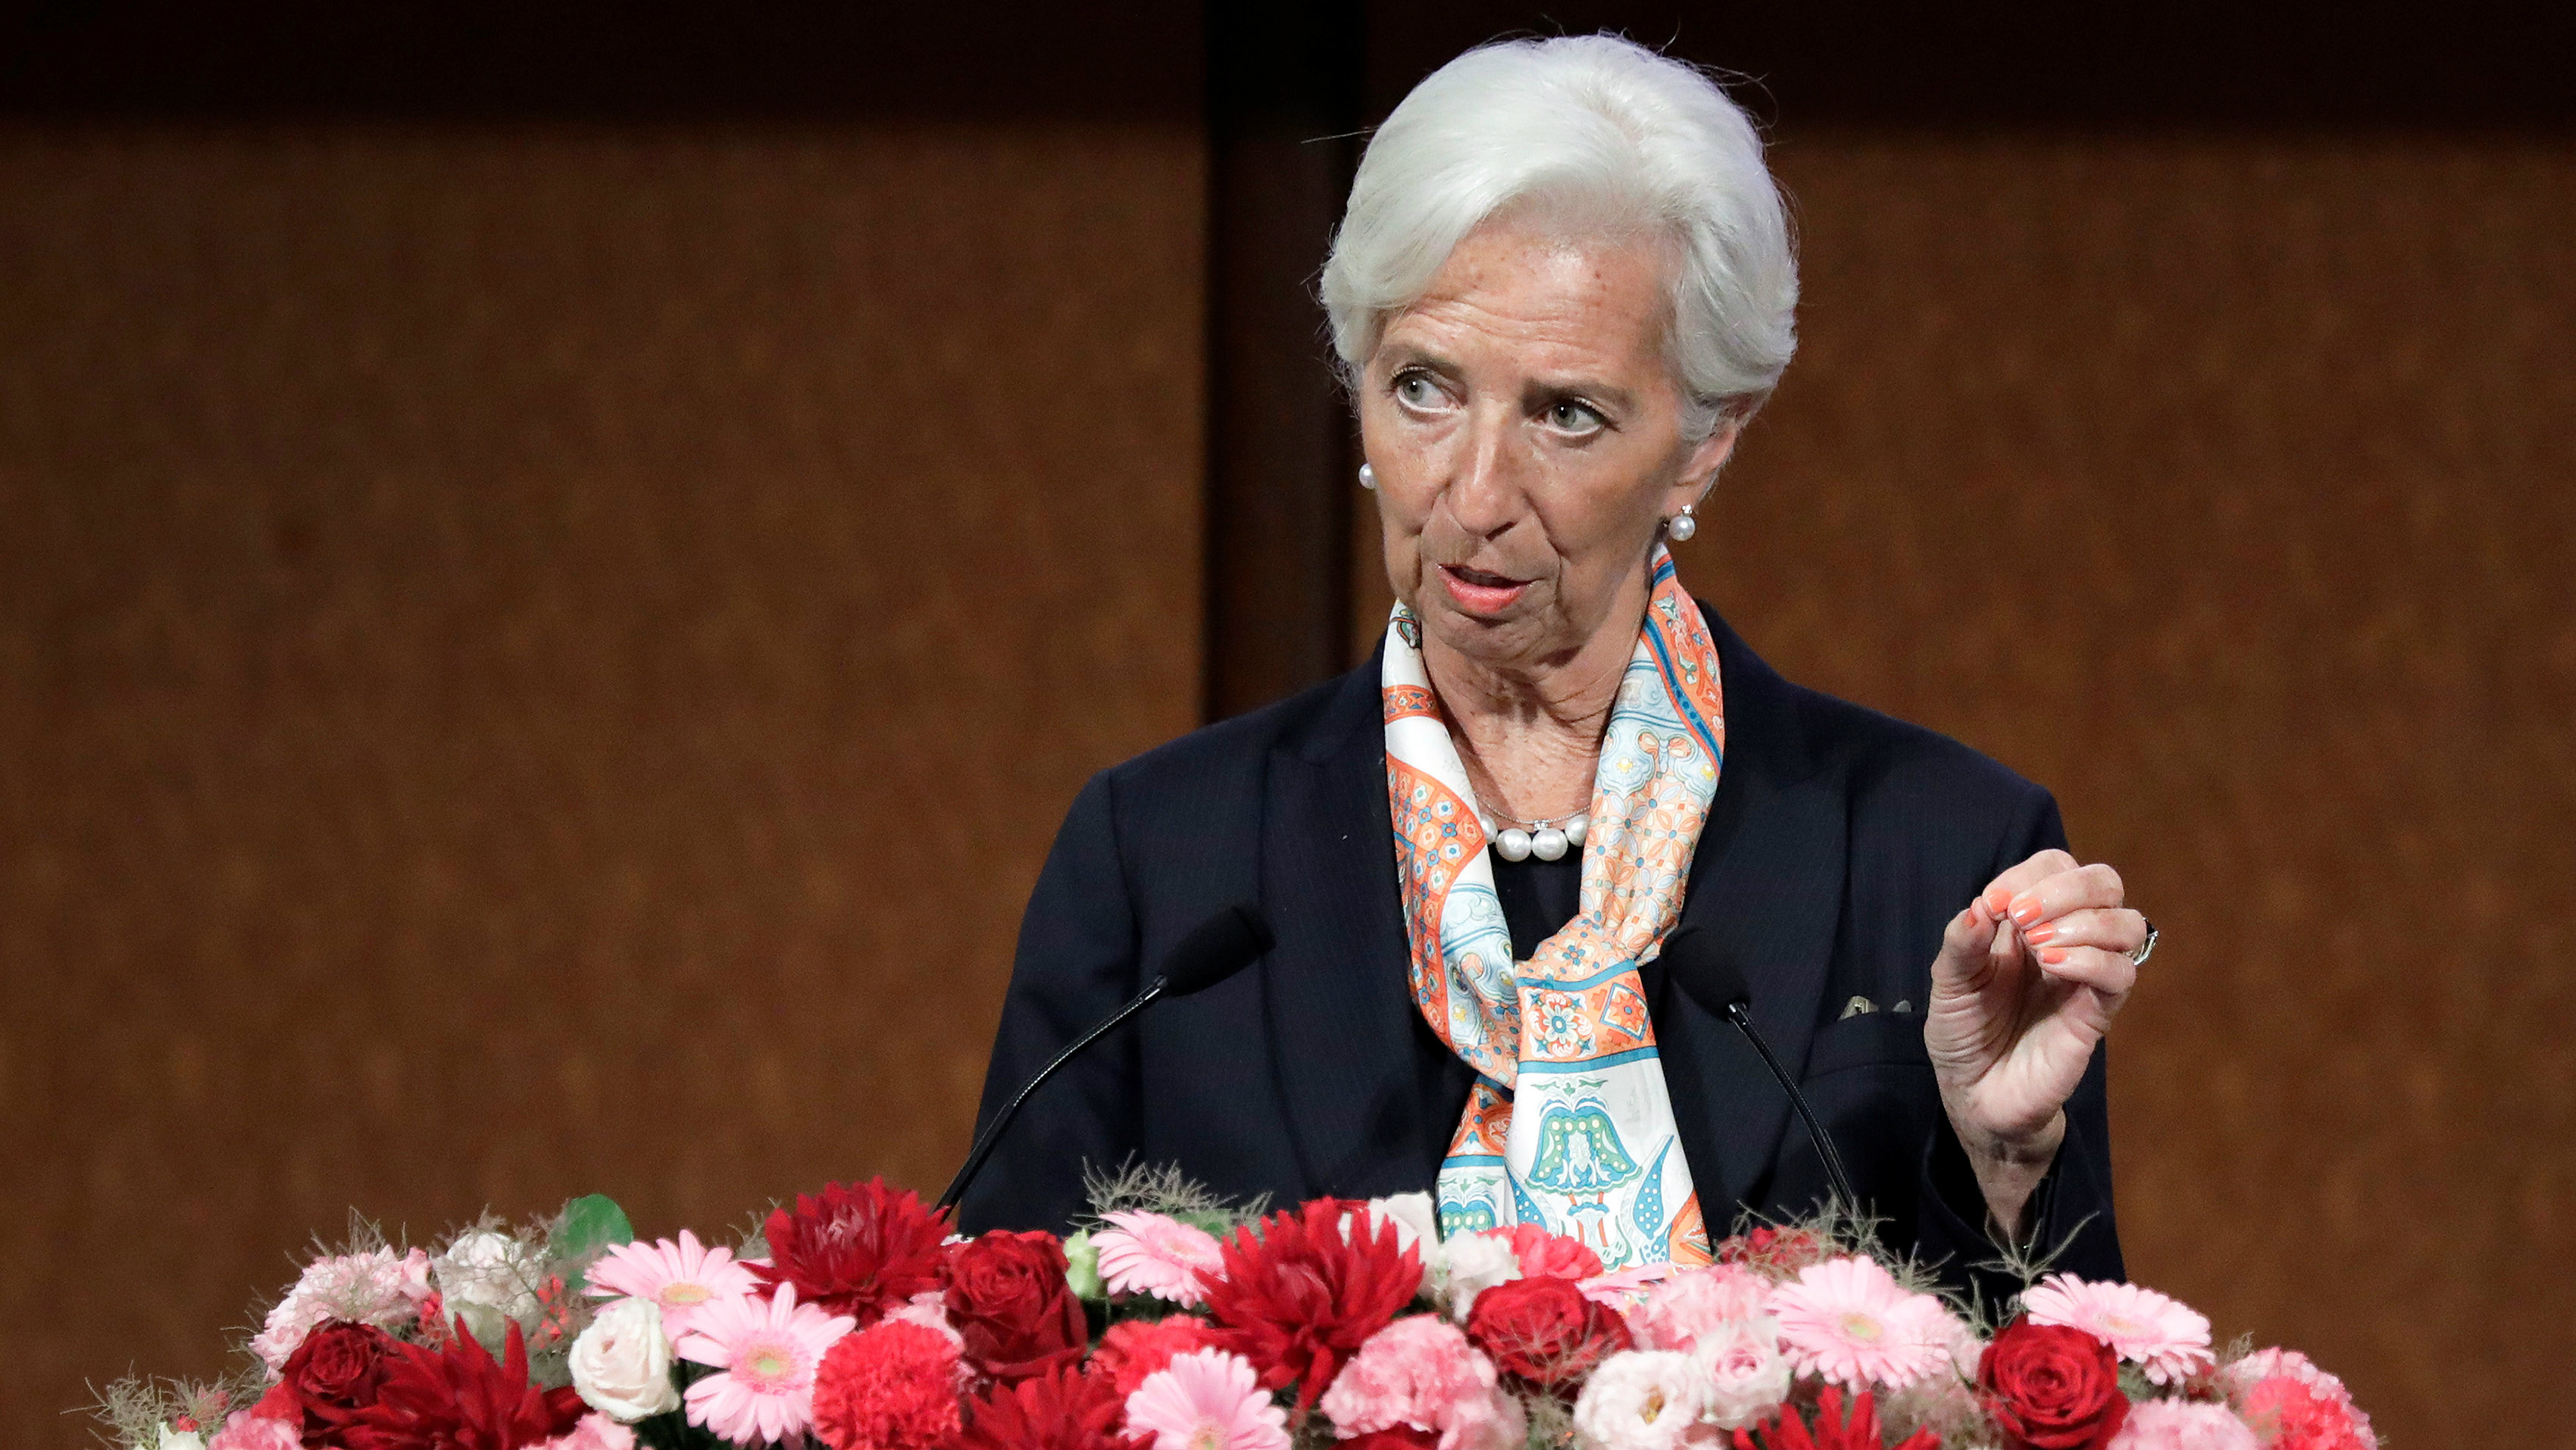 Christine-Lagarde-speech-digital-payments